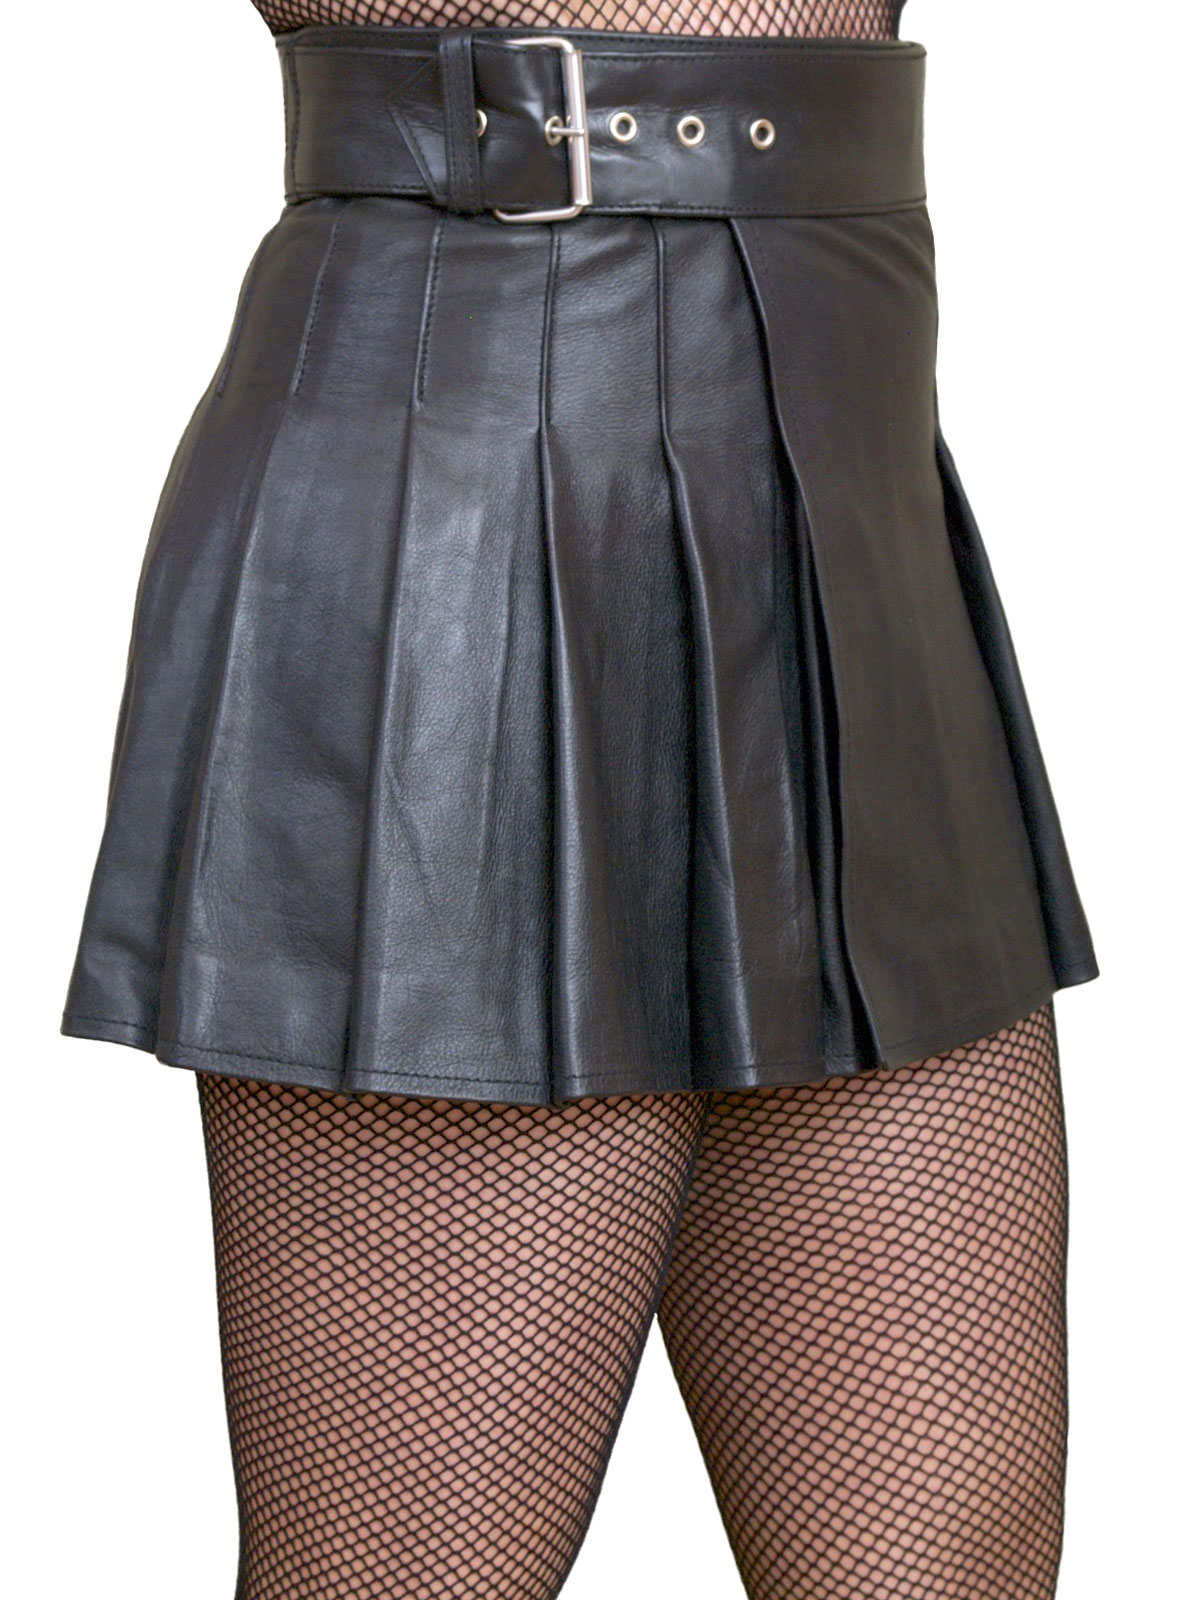 Ladies Black Leather Mini Skirt Kilt